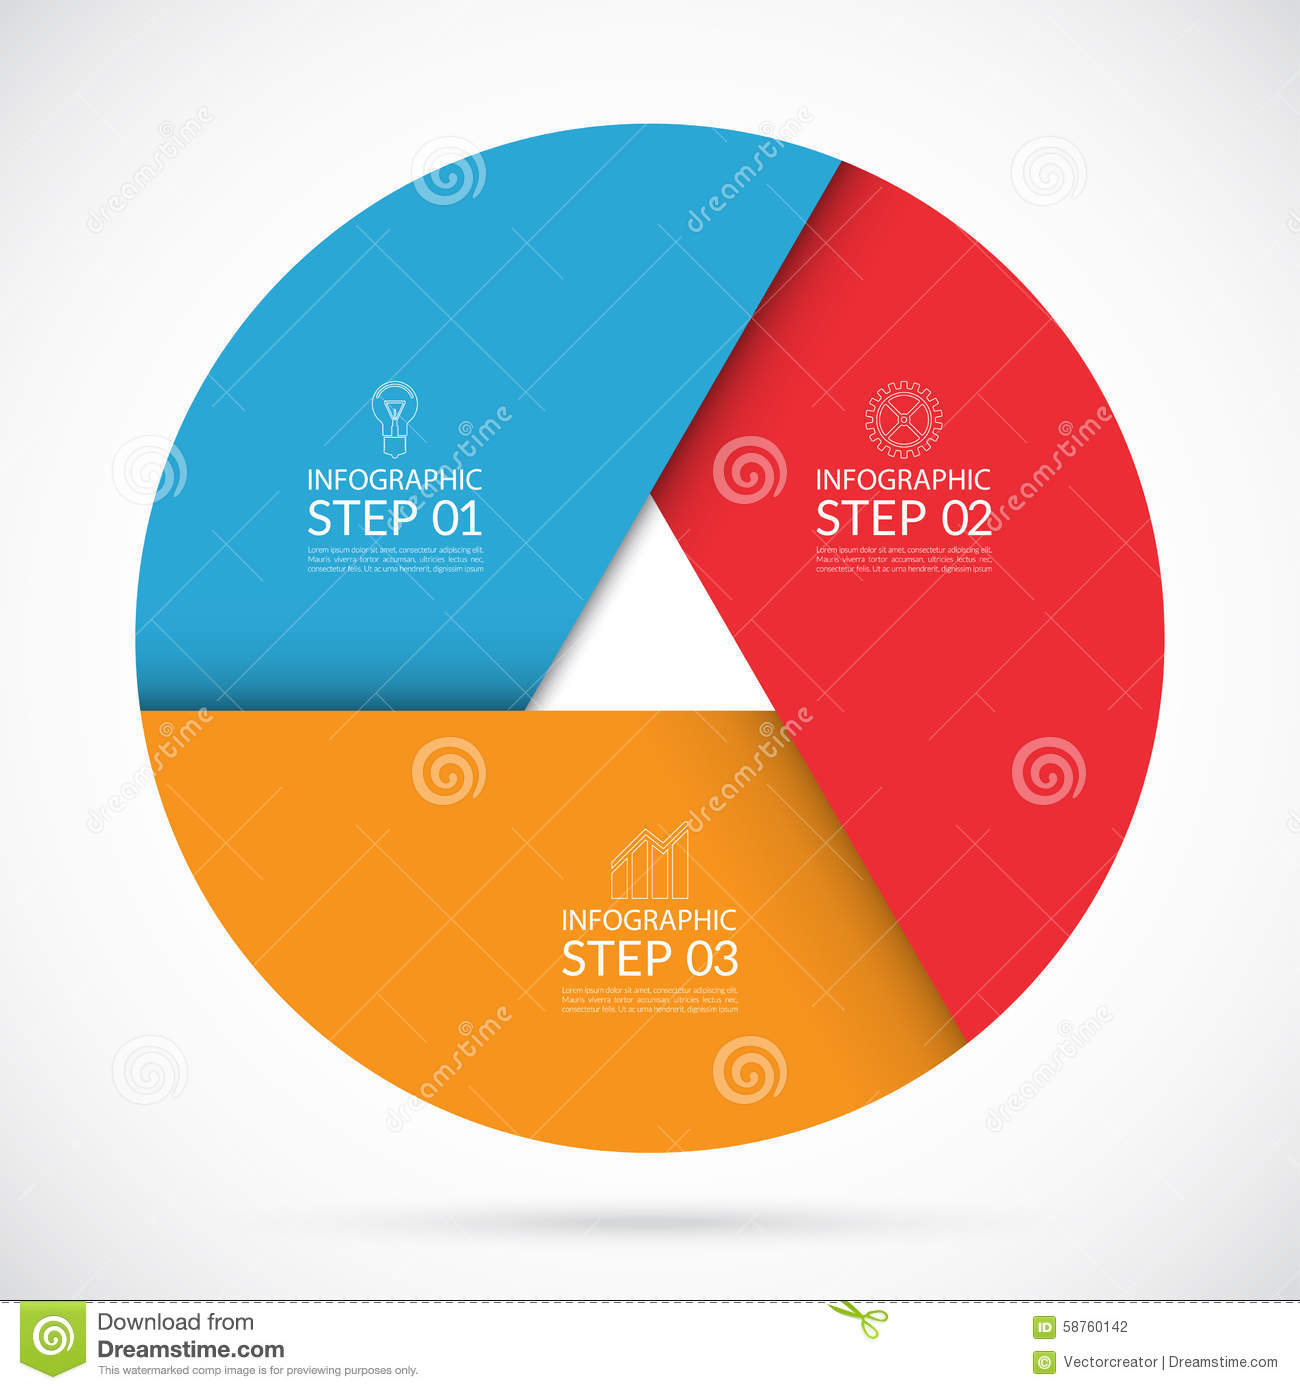 3 Steps Infographic Circle Template In Material Style Stock Vector